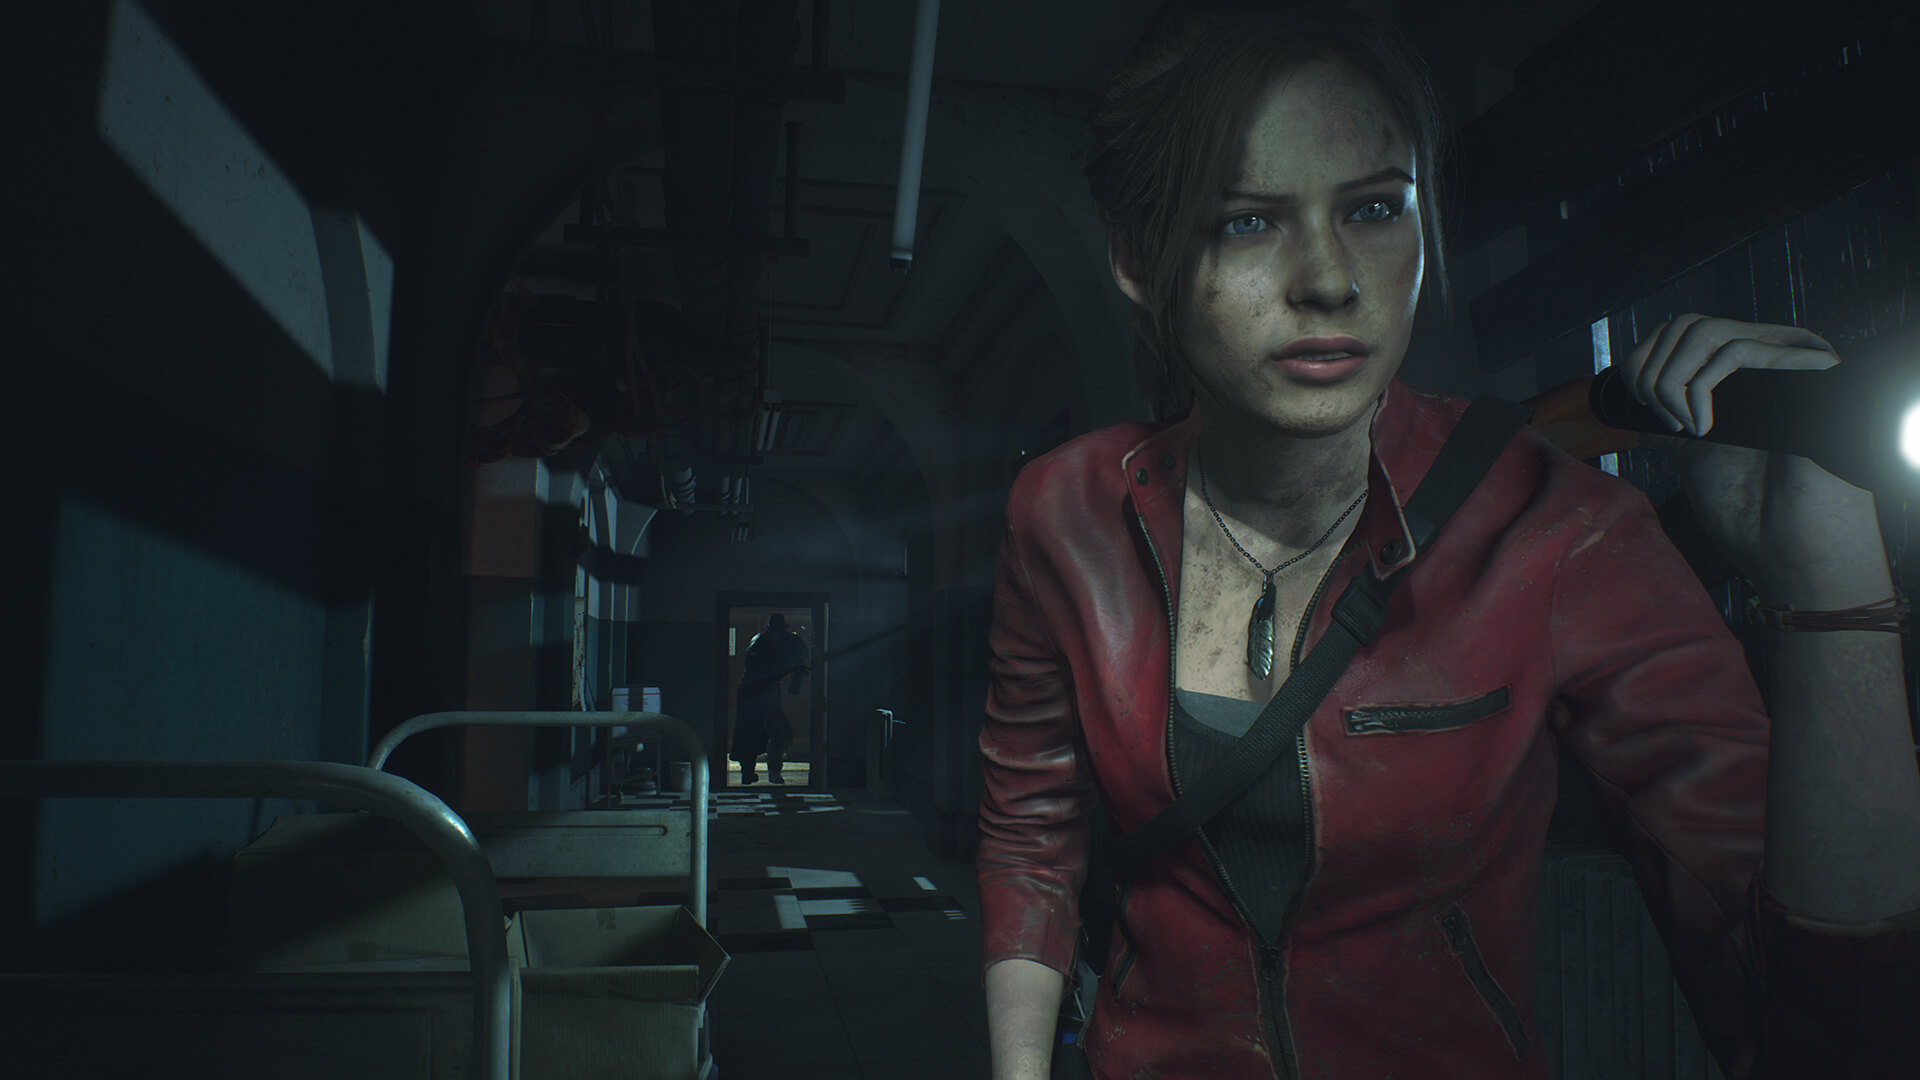 First Look At Resident Evil 2 Remake 1 Shot Demo | HubPages